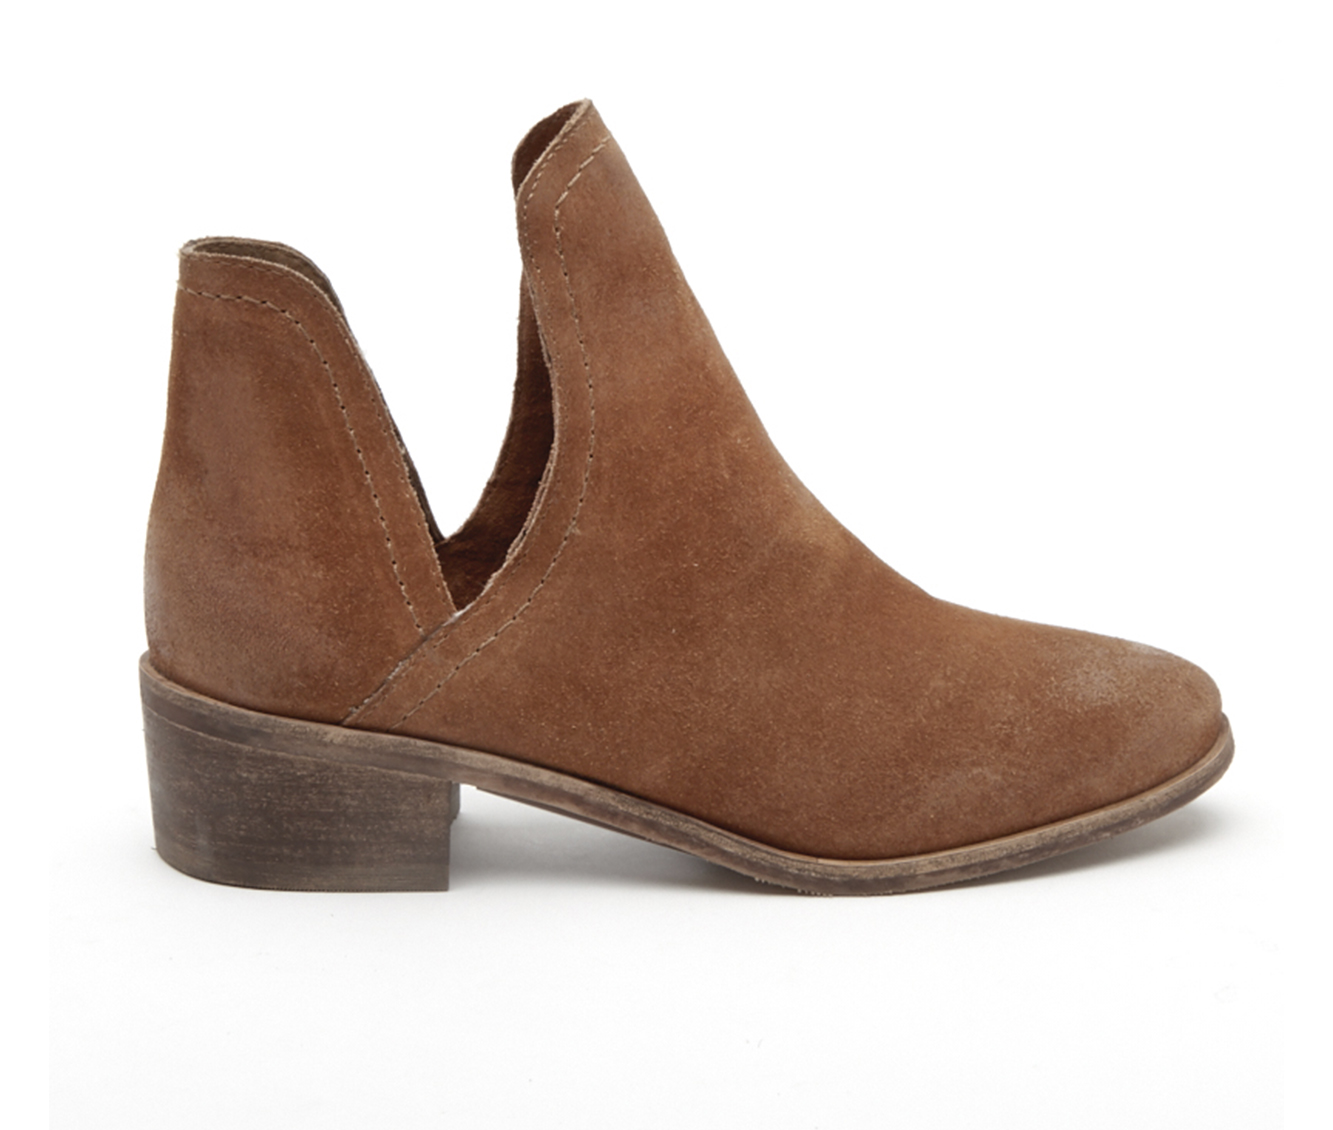 Coconuts Pronto Women's Boots (Brown - Suede)